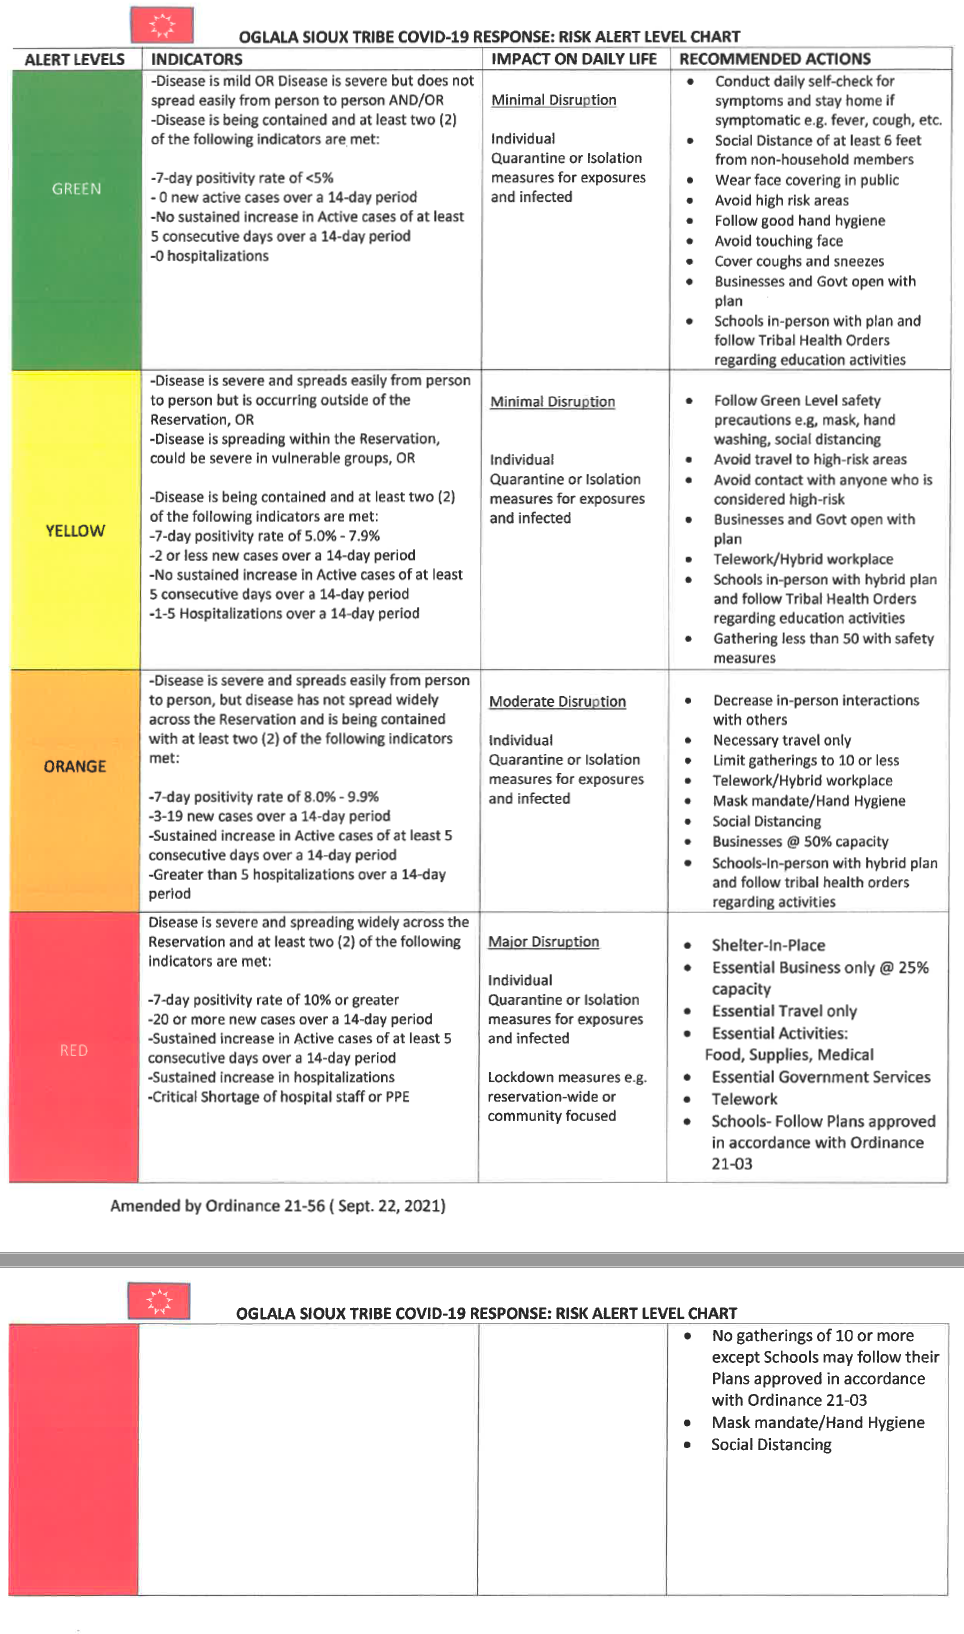 OST RISK CHART GRAPHIC